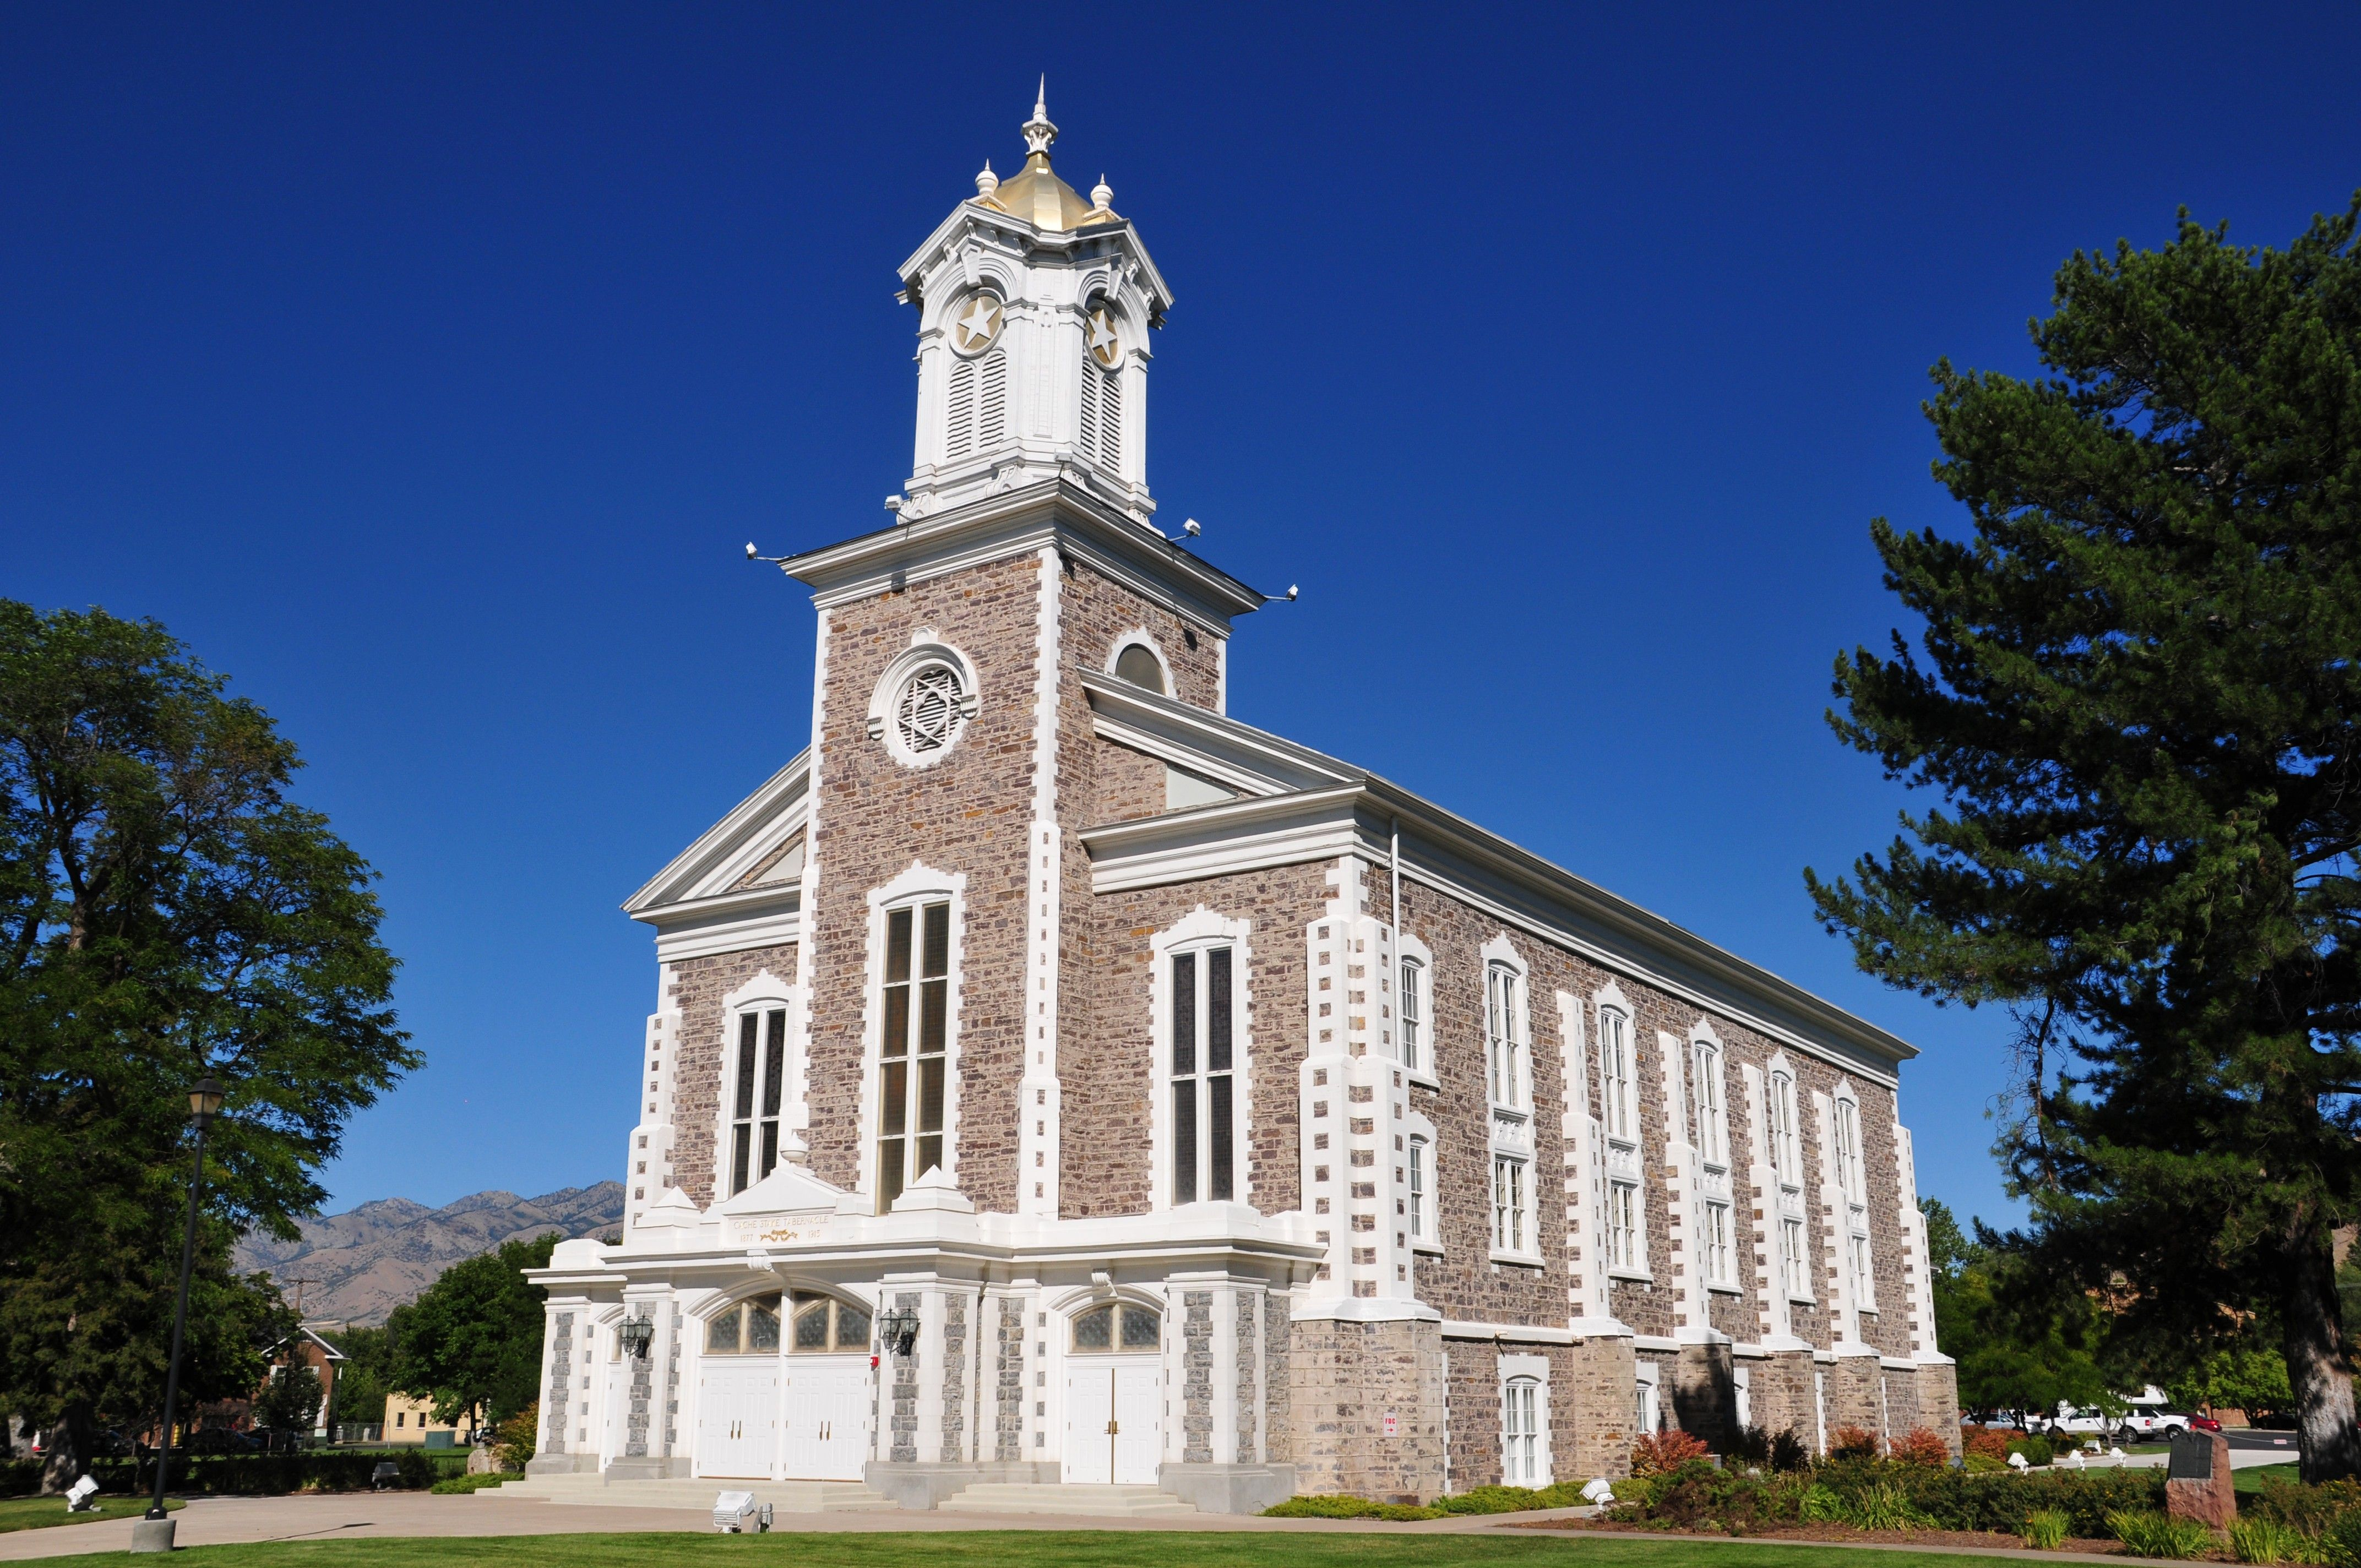 A front view of the Logan Tabernacle.